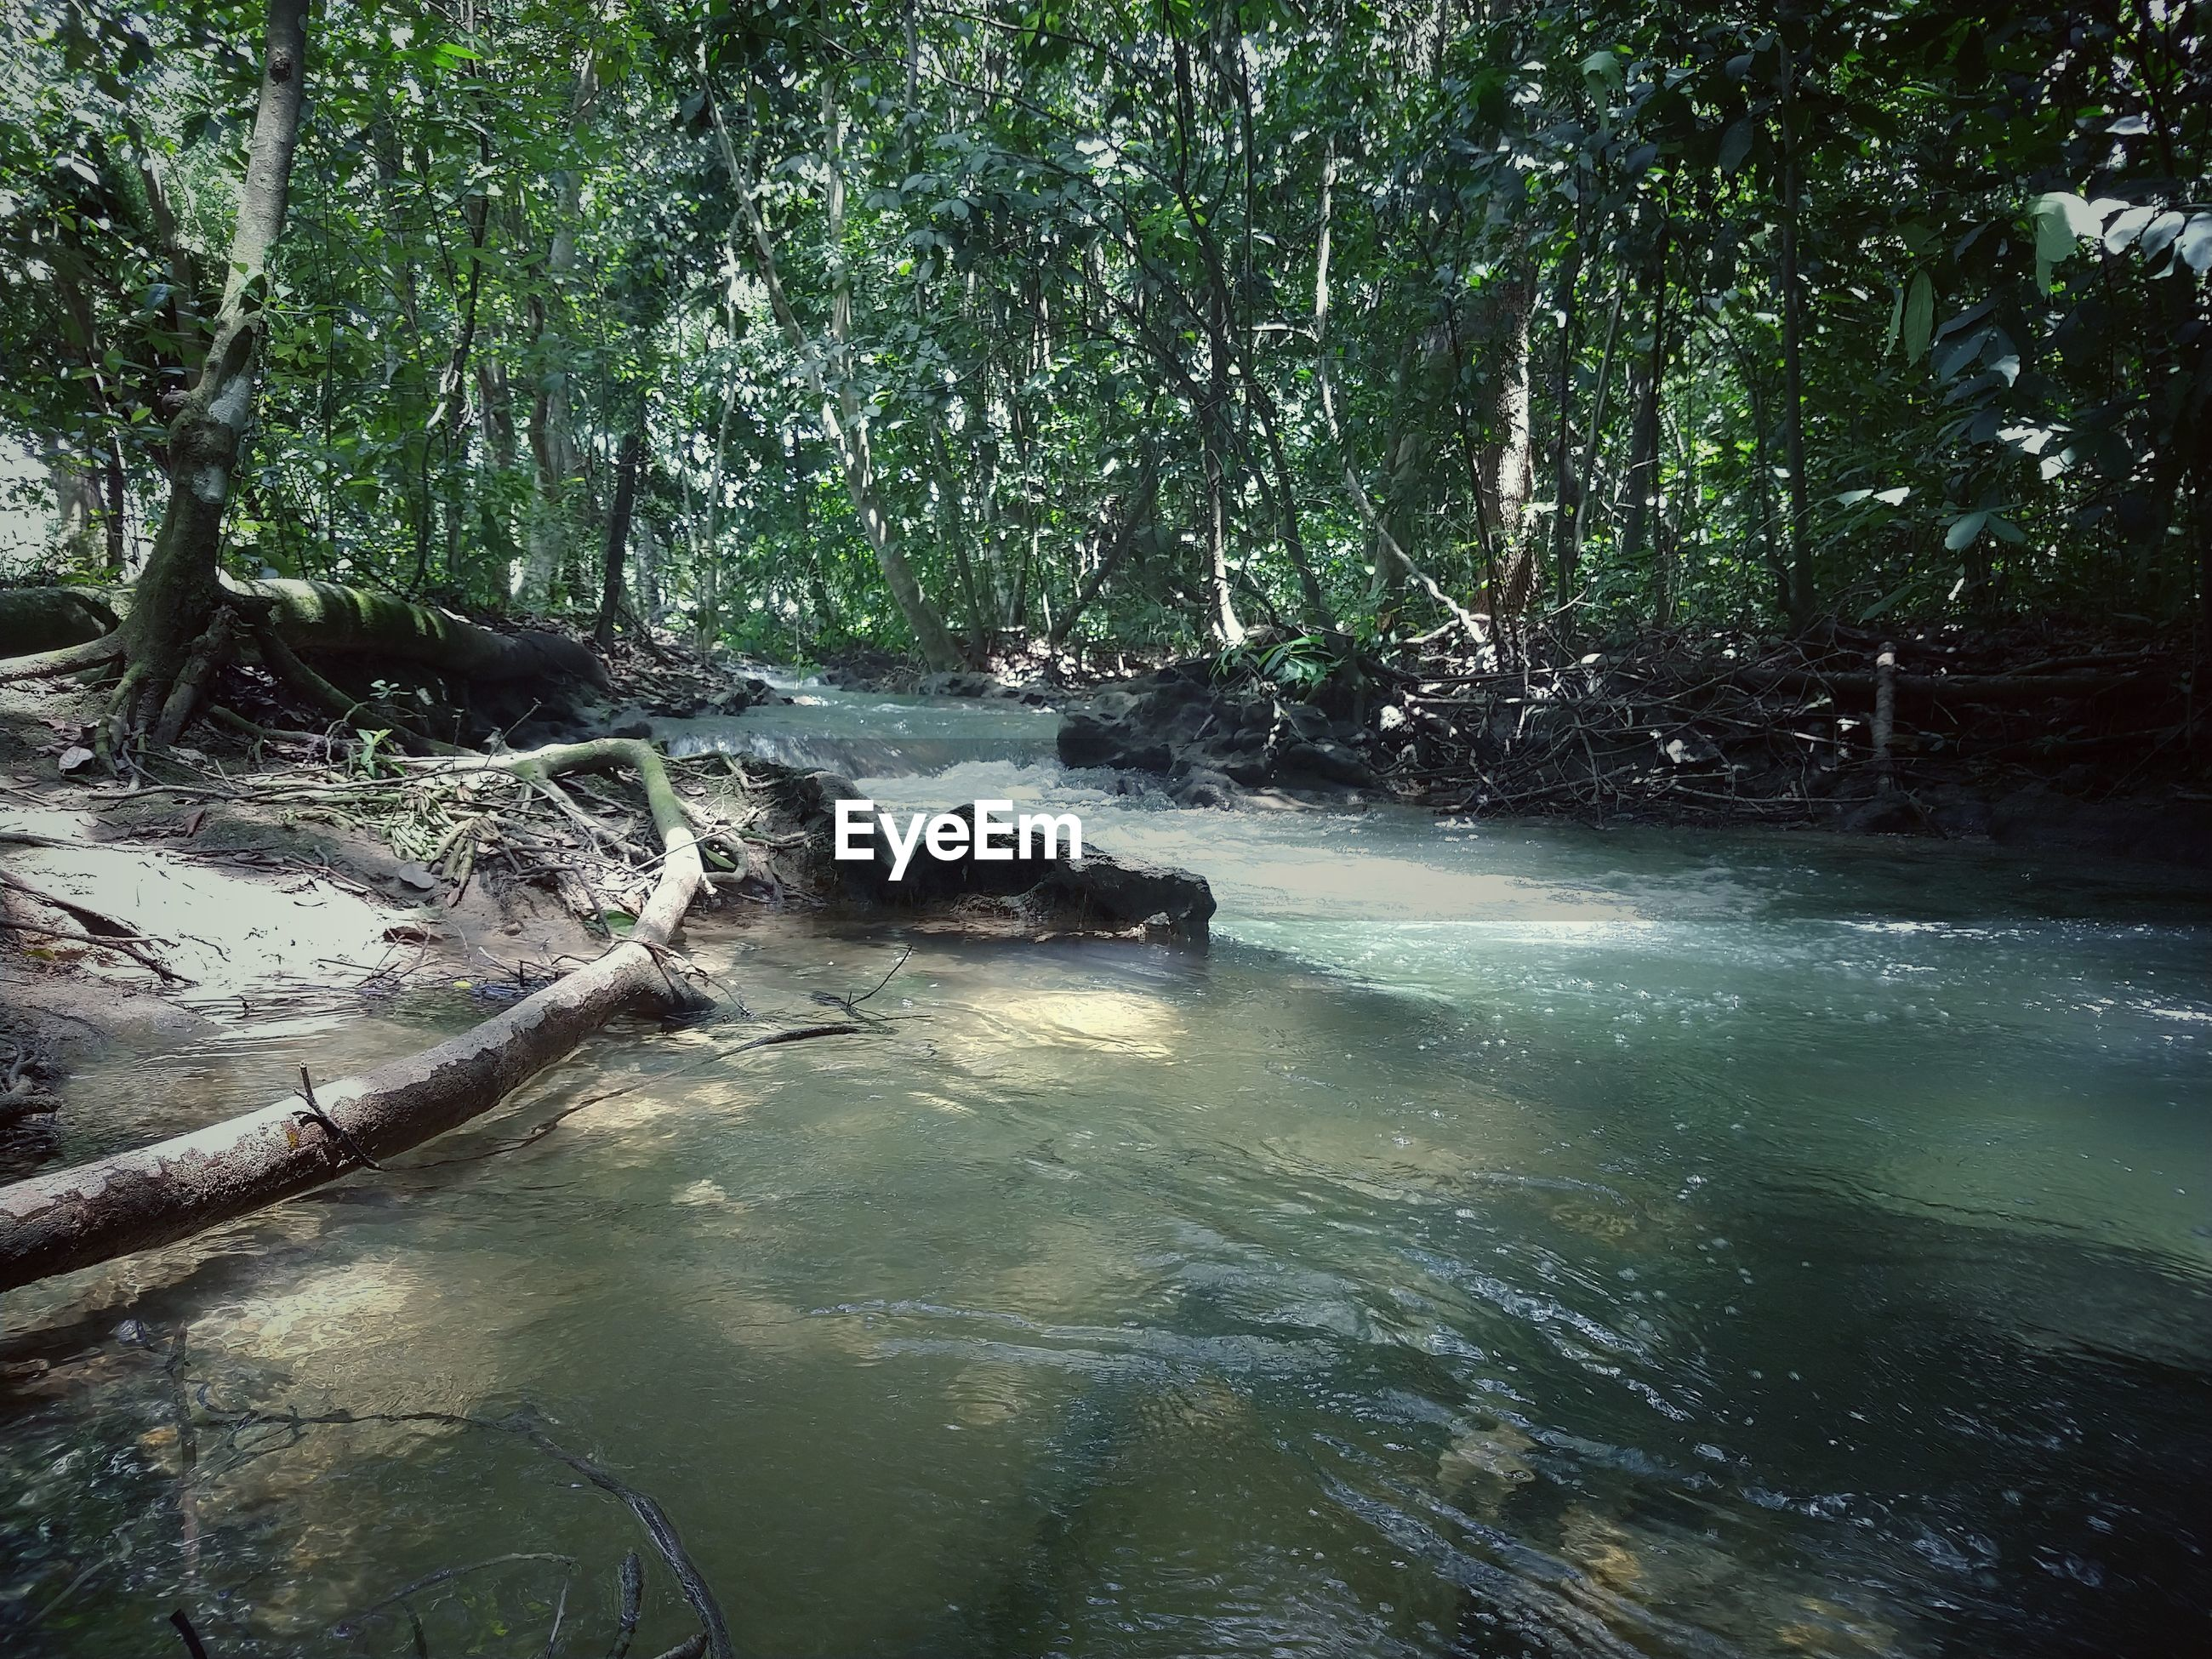 RIVER FLOWING THROUGH FOREST